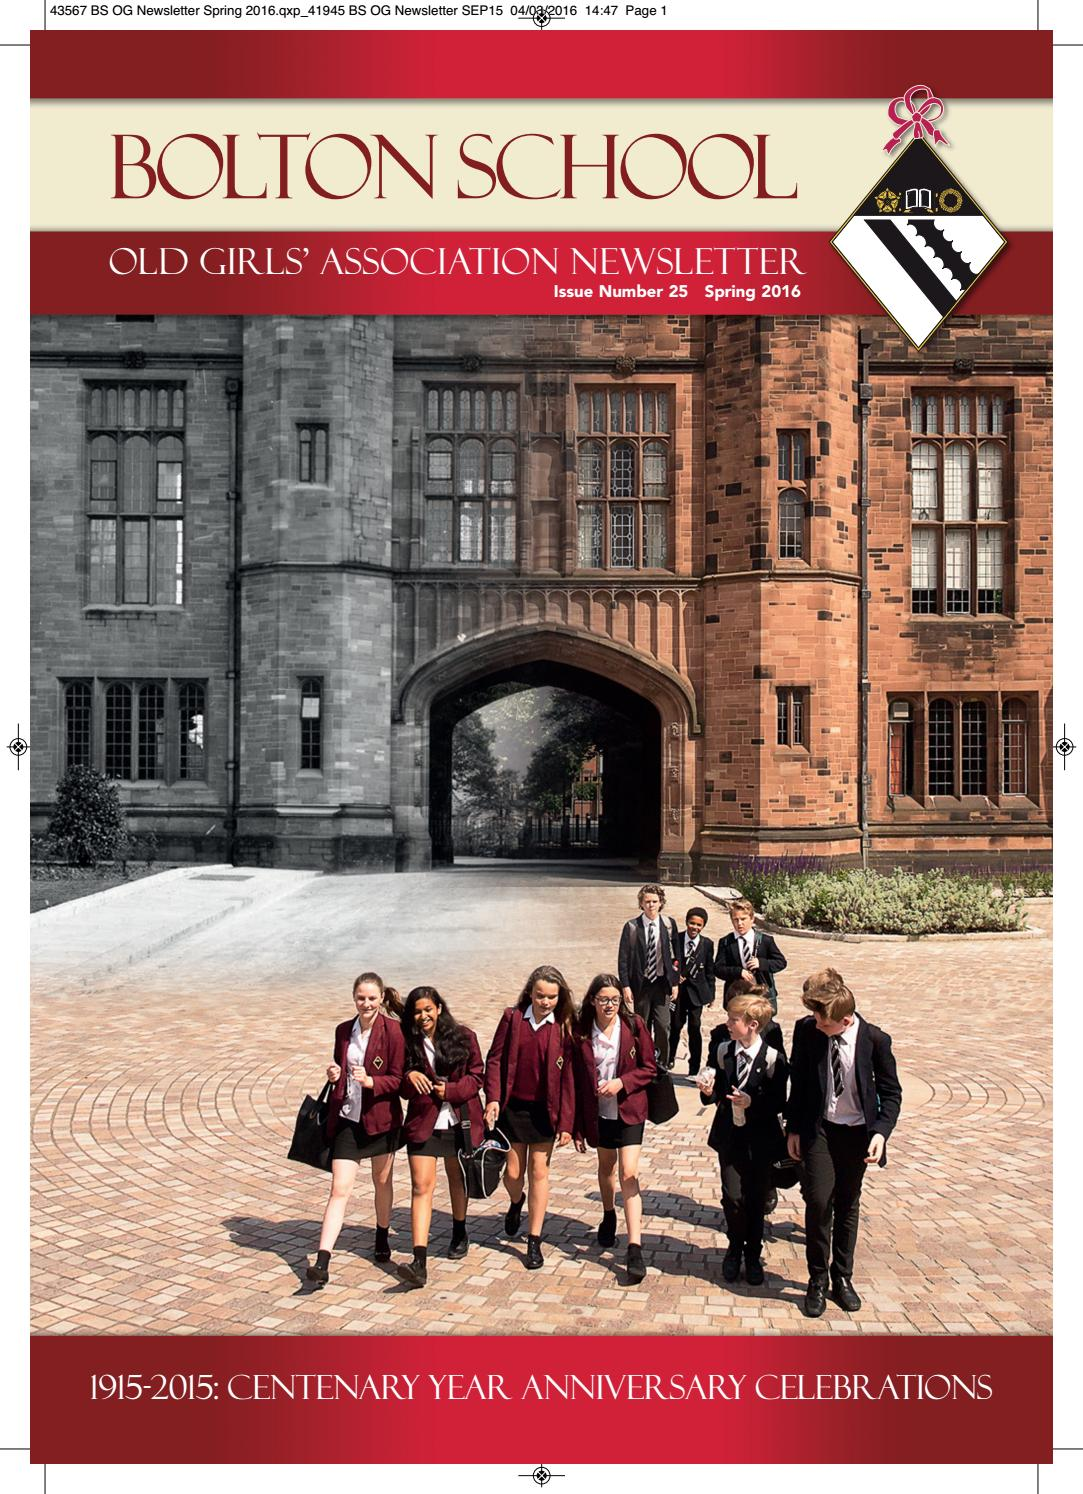 Old Girls Newsletter Spring 2016 By Bolton School